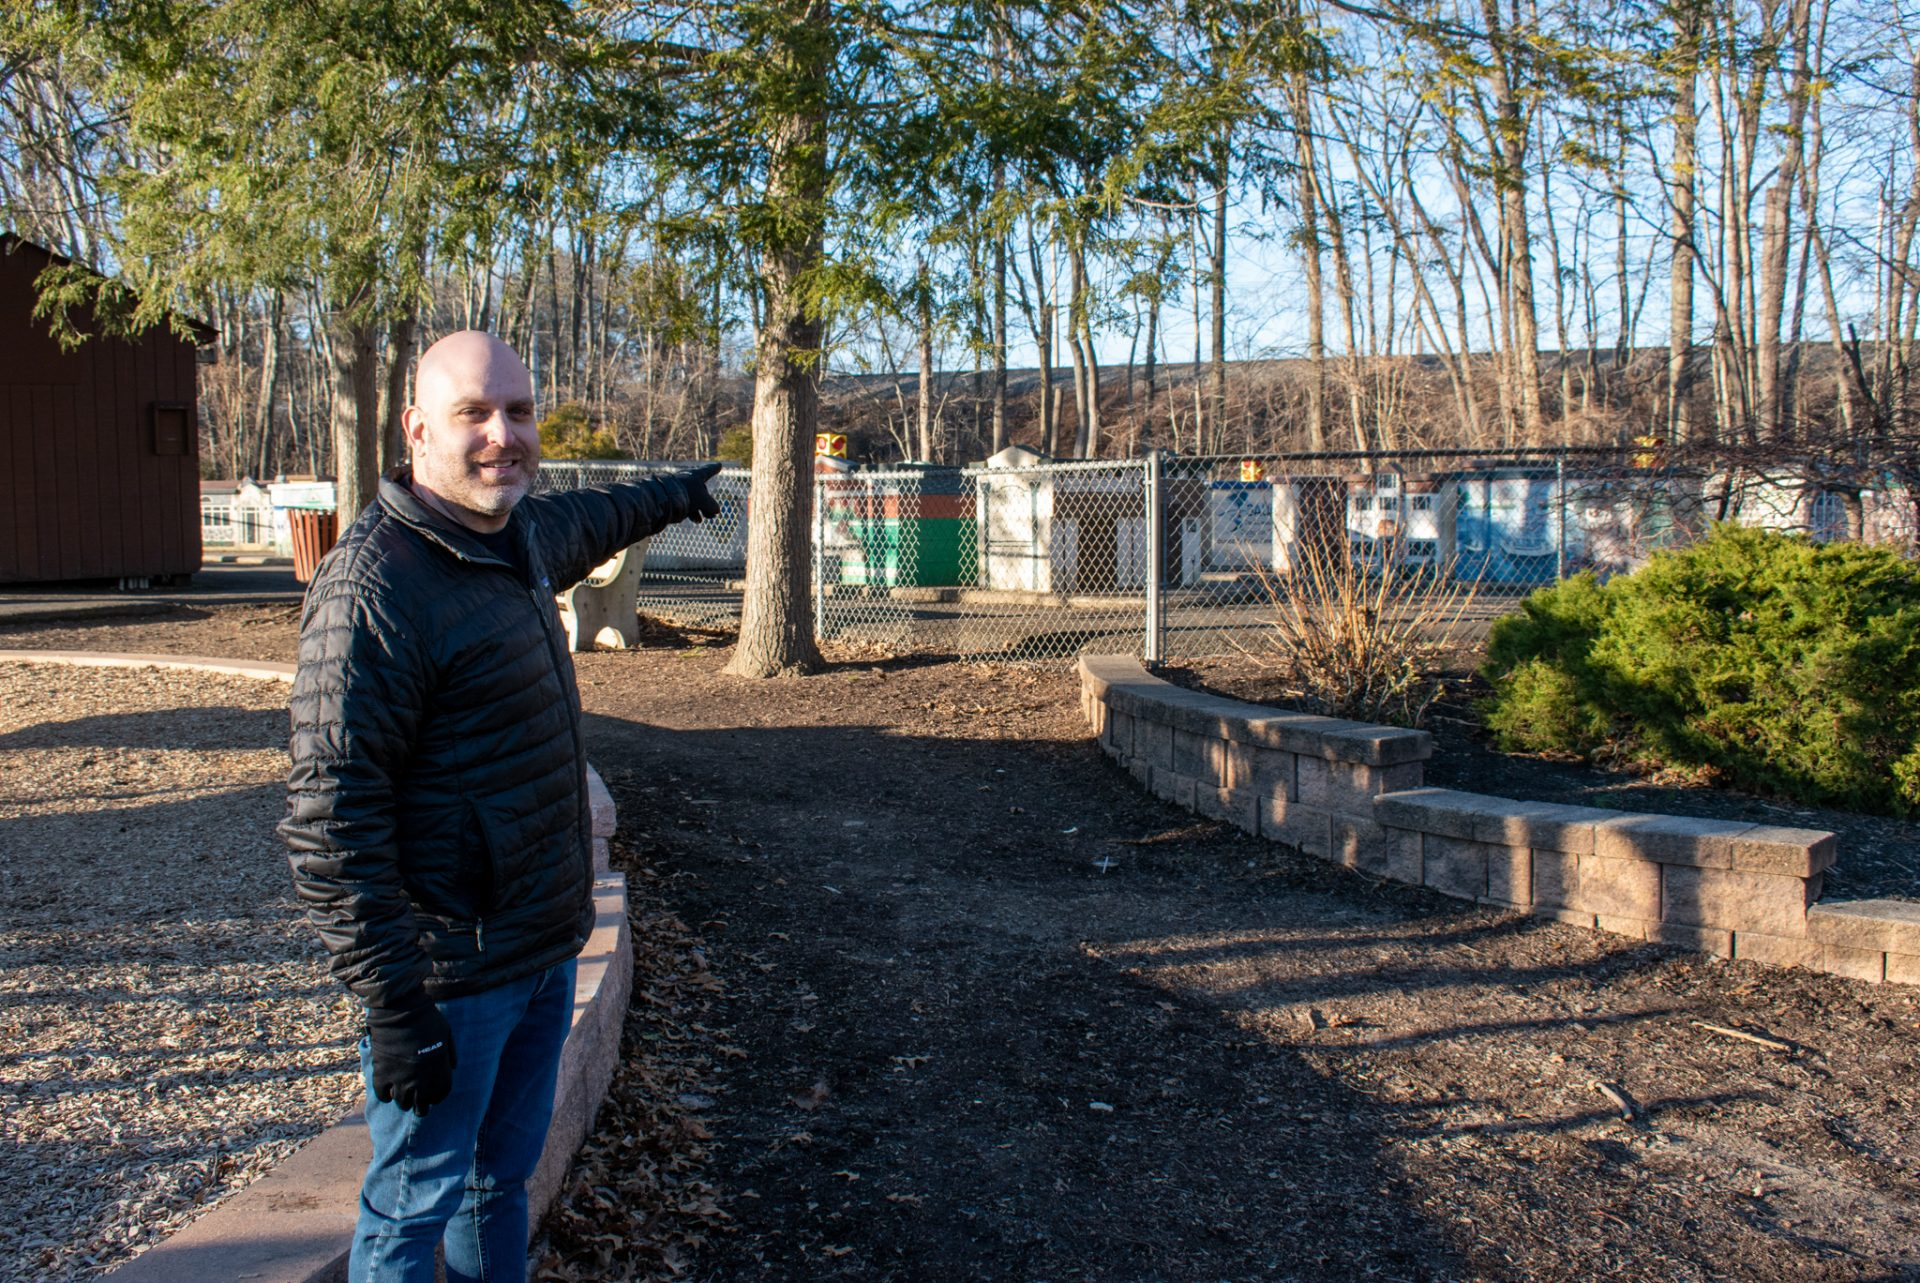 Drew Friedman points to an enclosed area at Mason Mill Park where his son Ari likes to play